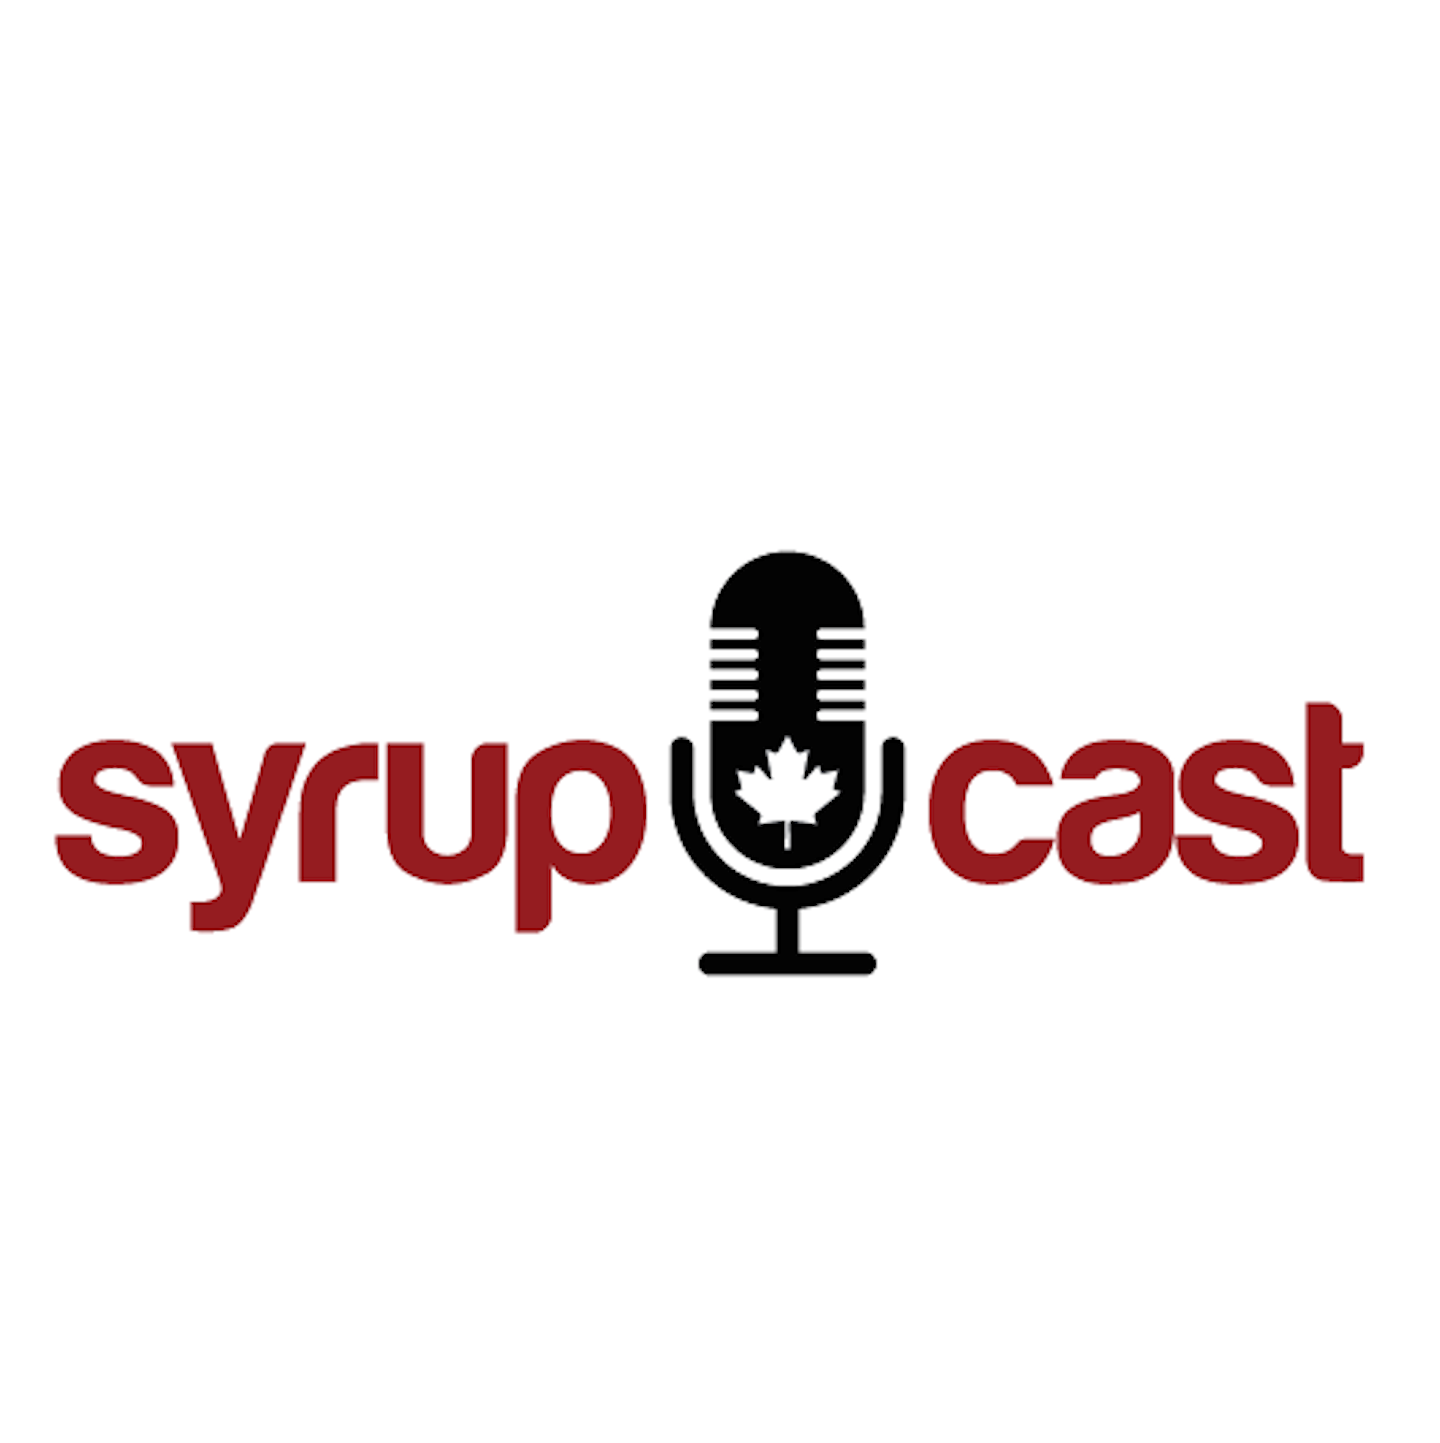 SyrupCast 75: Netflix frills and carrier spills